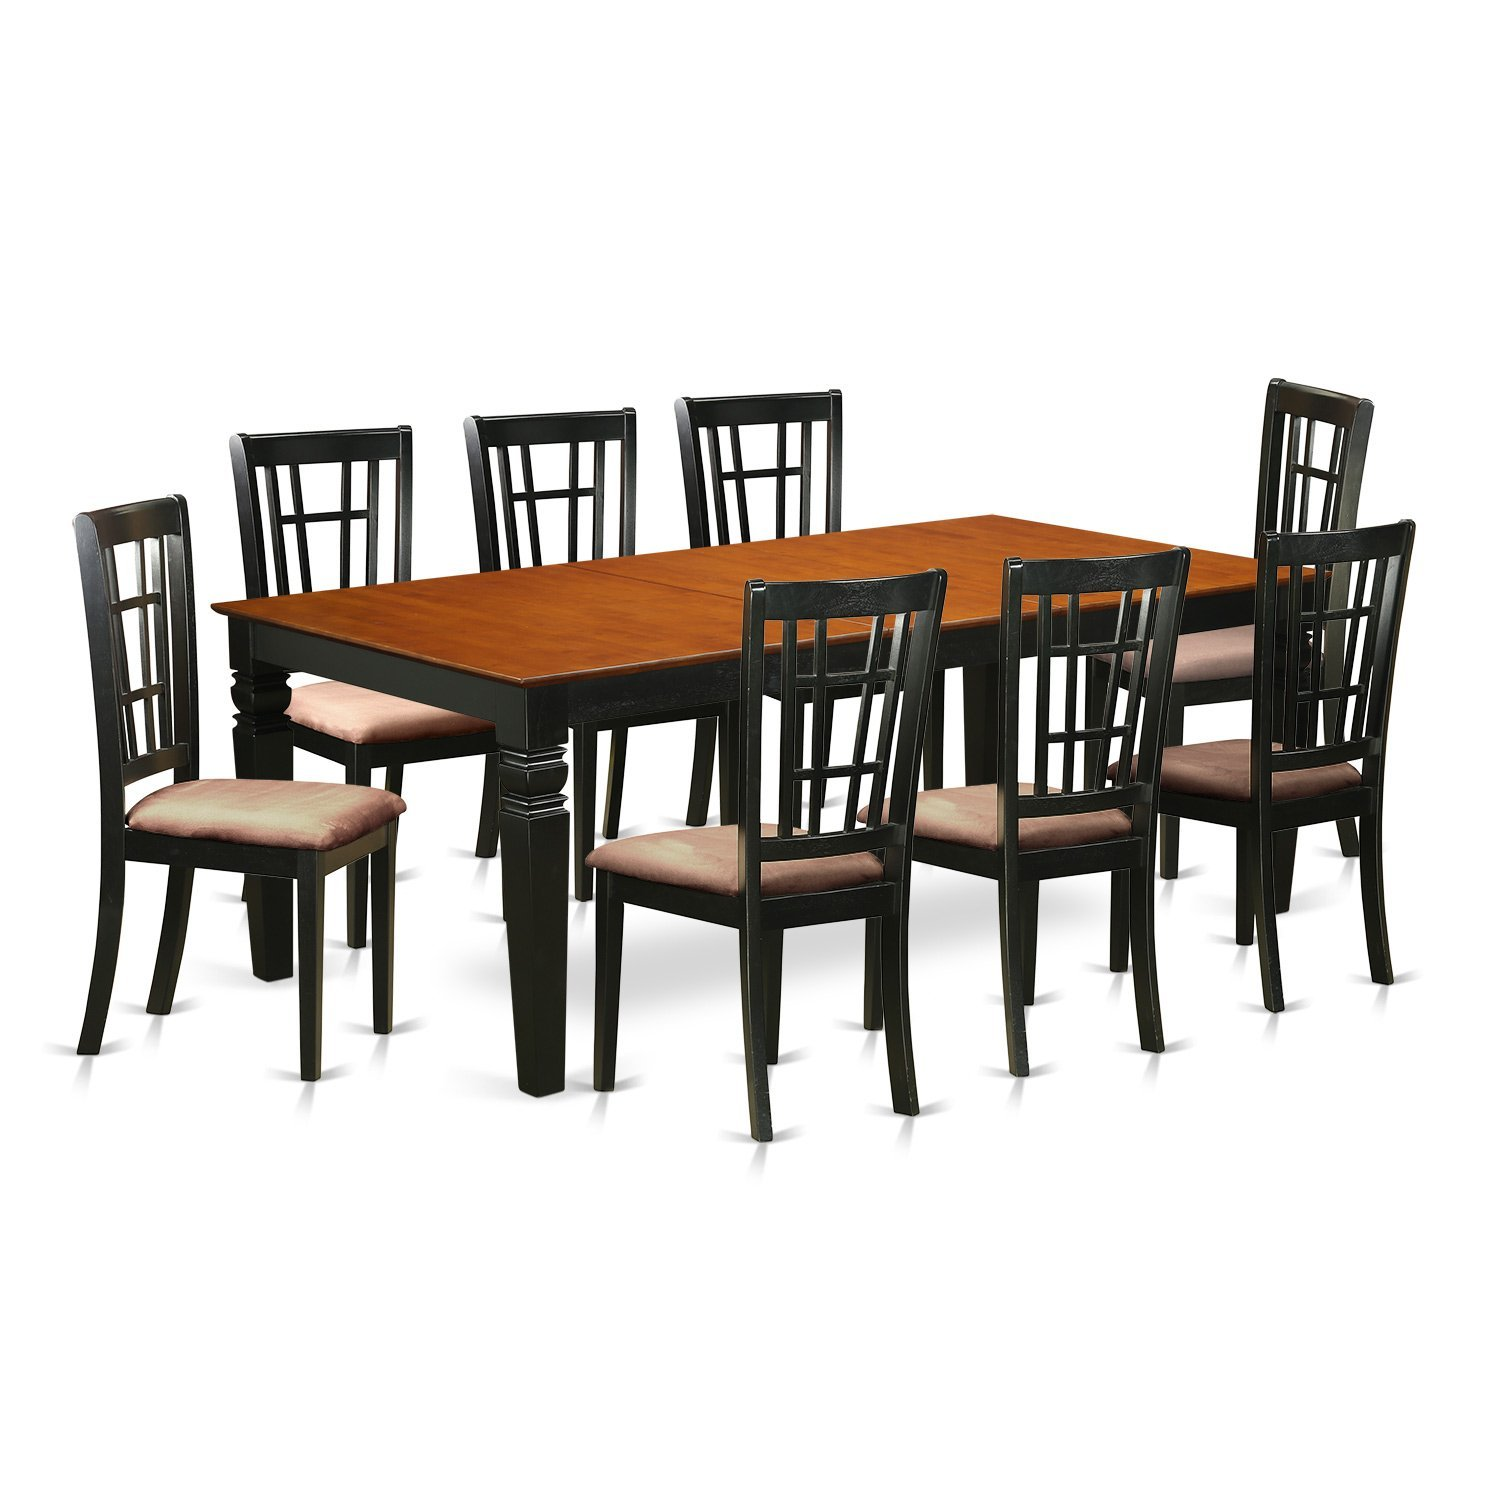 East West Furniture LGNI9-BCH-C 9 PC Kitchen Table Set with One Logan Dining Table & Eight Kitchen Chairs in Black & Cherry Finish